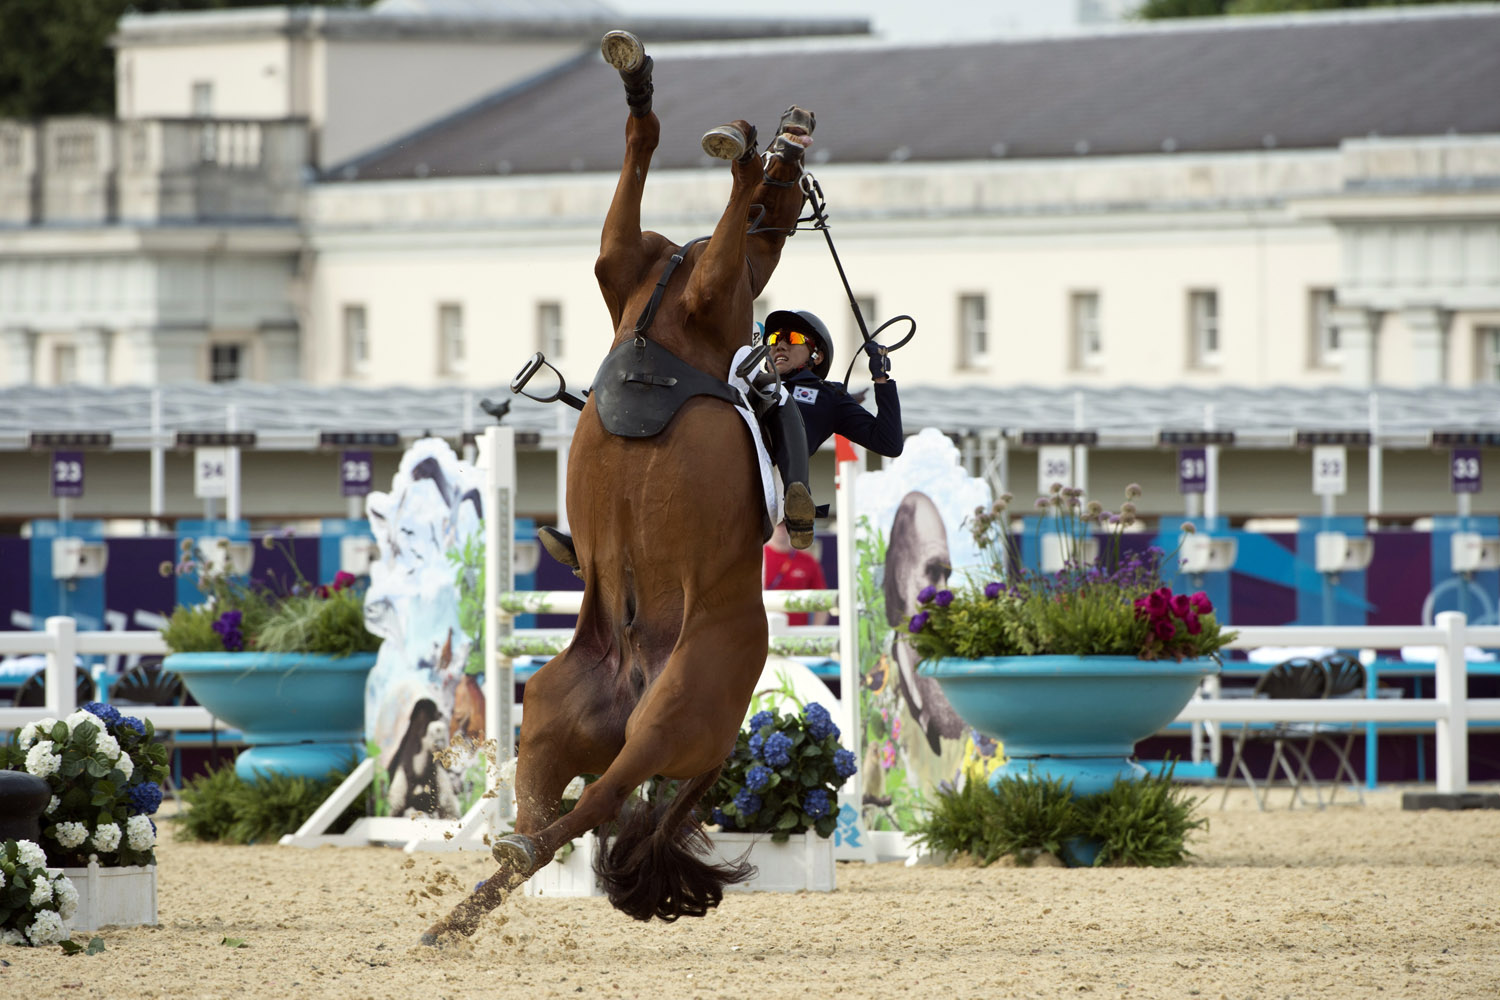 Aug. 11, 2012. South Korea's Hwang Woojin loses control of his horse Shearwater Oscar during the Show Jumping event of the Modern Pentathlon during the 2012 London Olympics.